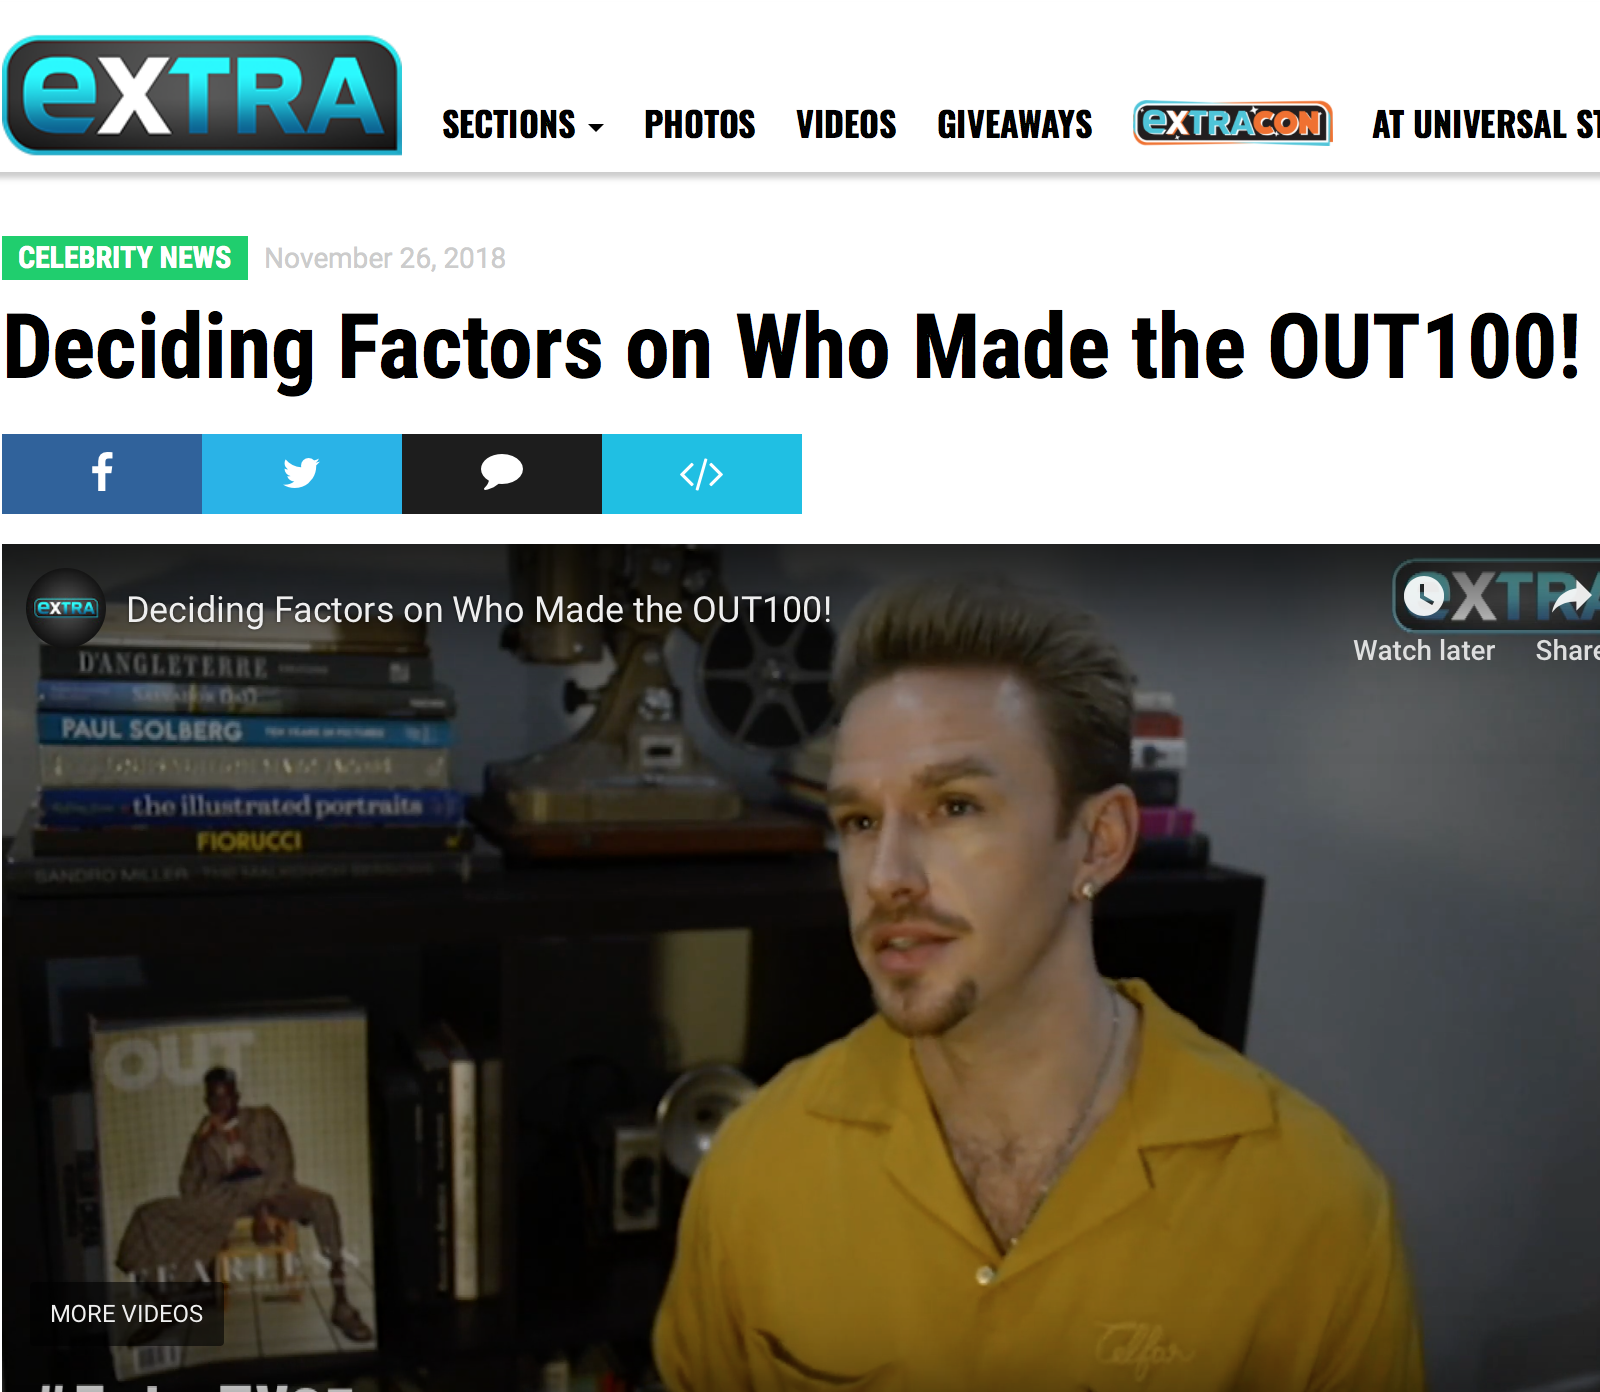 """EXTRA  (VIDEO INTERVIEW)   """"As for how the list was curated,  Out  editor R. Kurt Osenlund said, 'We looked at at every pocket of culture to see who was making their voice heard. We found a lot of different people. Our community is not one size, shape, color, or gender identity. It dictated how we chose people, but it was an organic process because it's simply what our community looks like.'"""""""